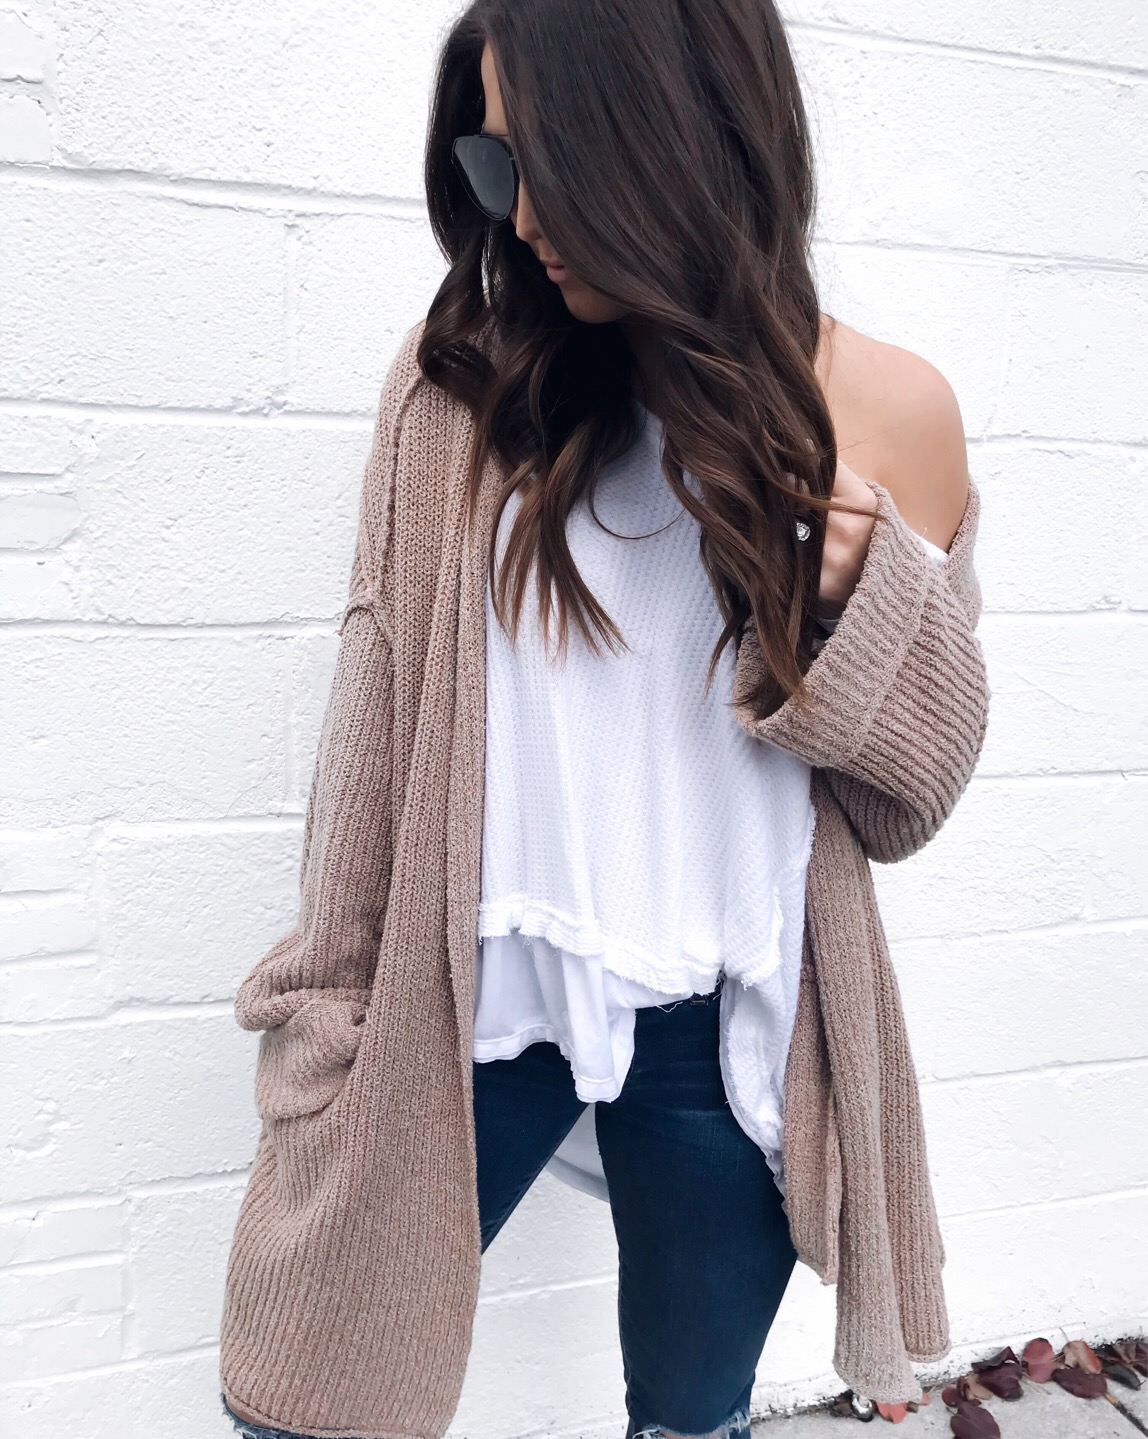 fall fashion, fall outfit idea, fall outfit inspiration, free people outfit idea, outfit of the day